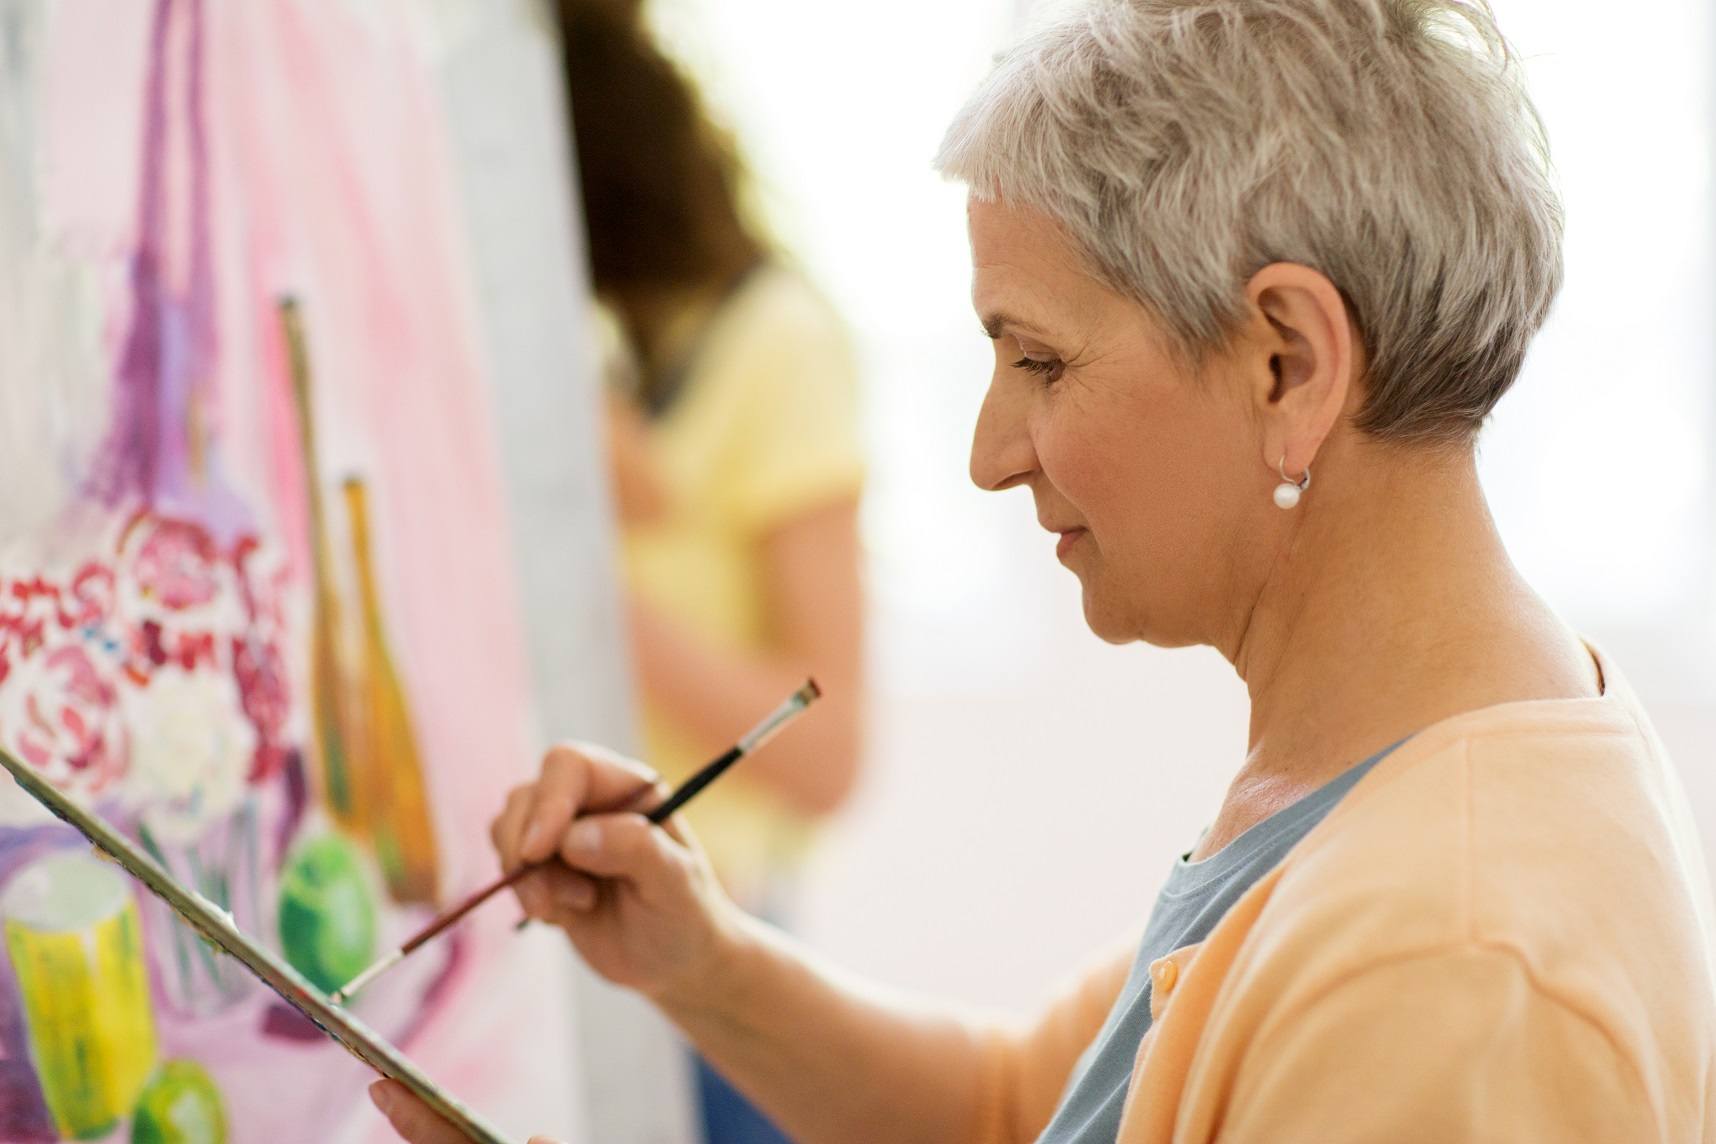 The Use of Creative Arts in Healthcare